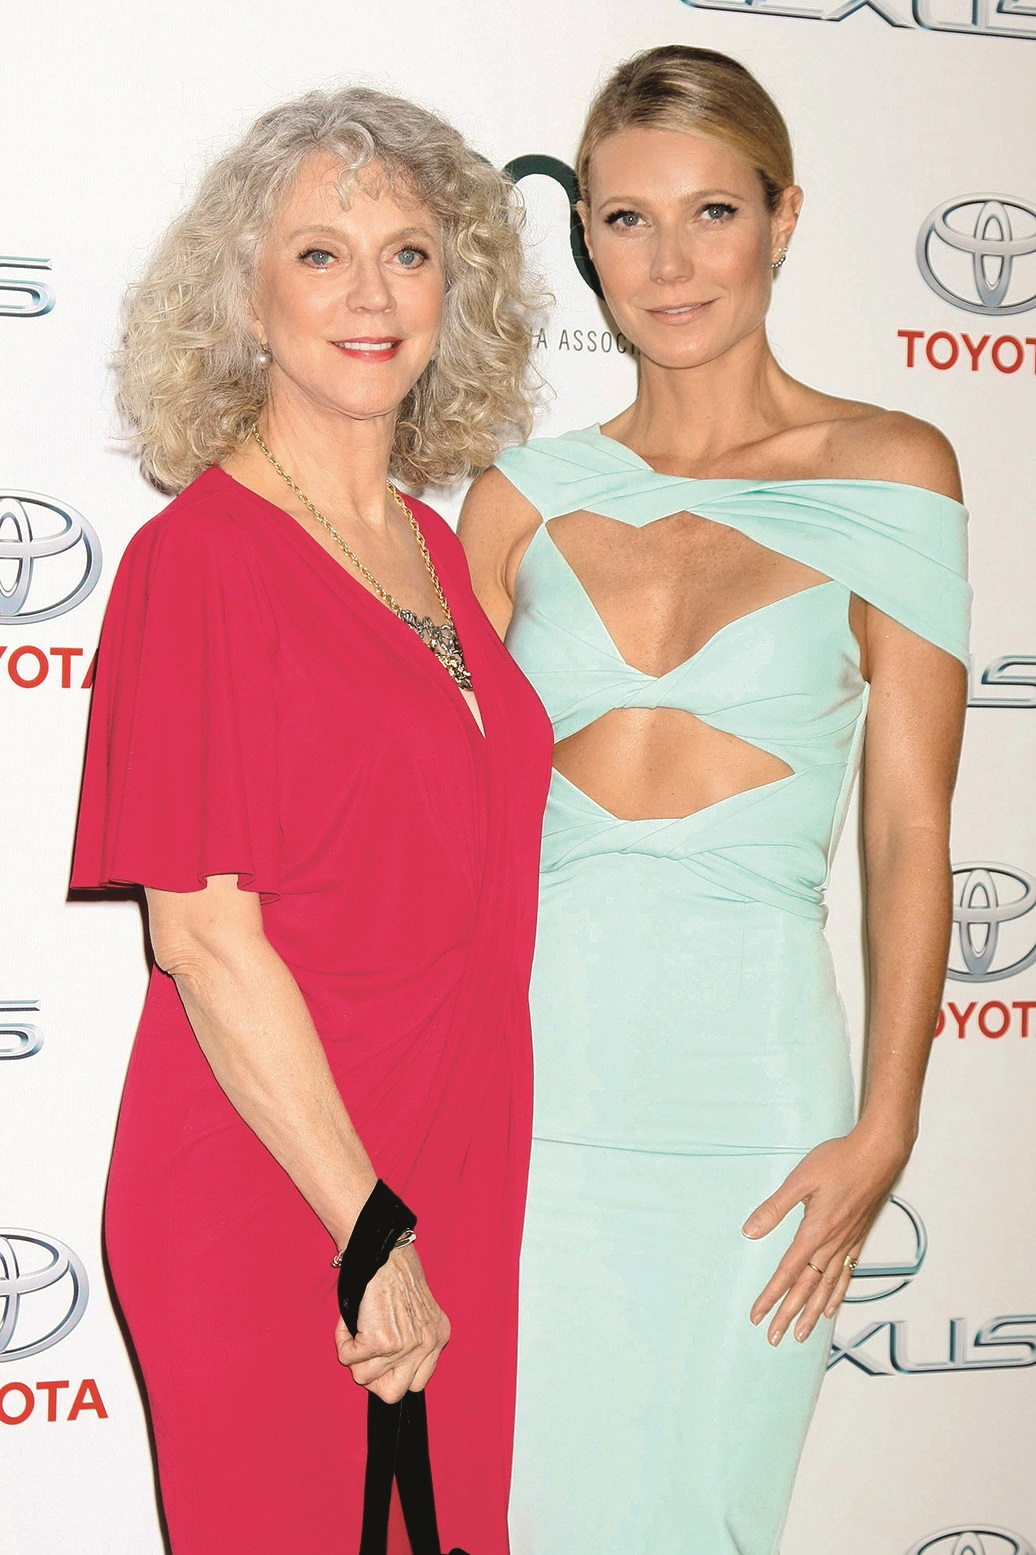 (5294270c) Blythe Danner, Gwyneth Paltrow 25th Annual EMA Awards, Los Angeles, America - 24 Oct 2015, Image: 263786600, License: Rights-managed, Restrictions: , Model Release: no, Credit line: MediaPunch / Shutterstock Editorial / Profimedia